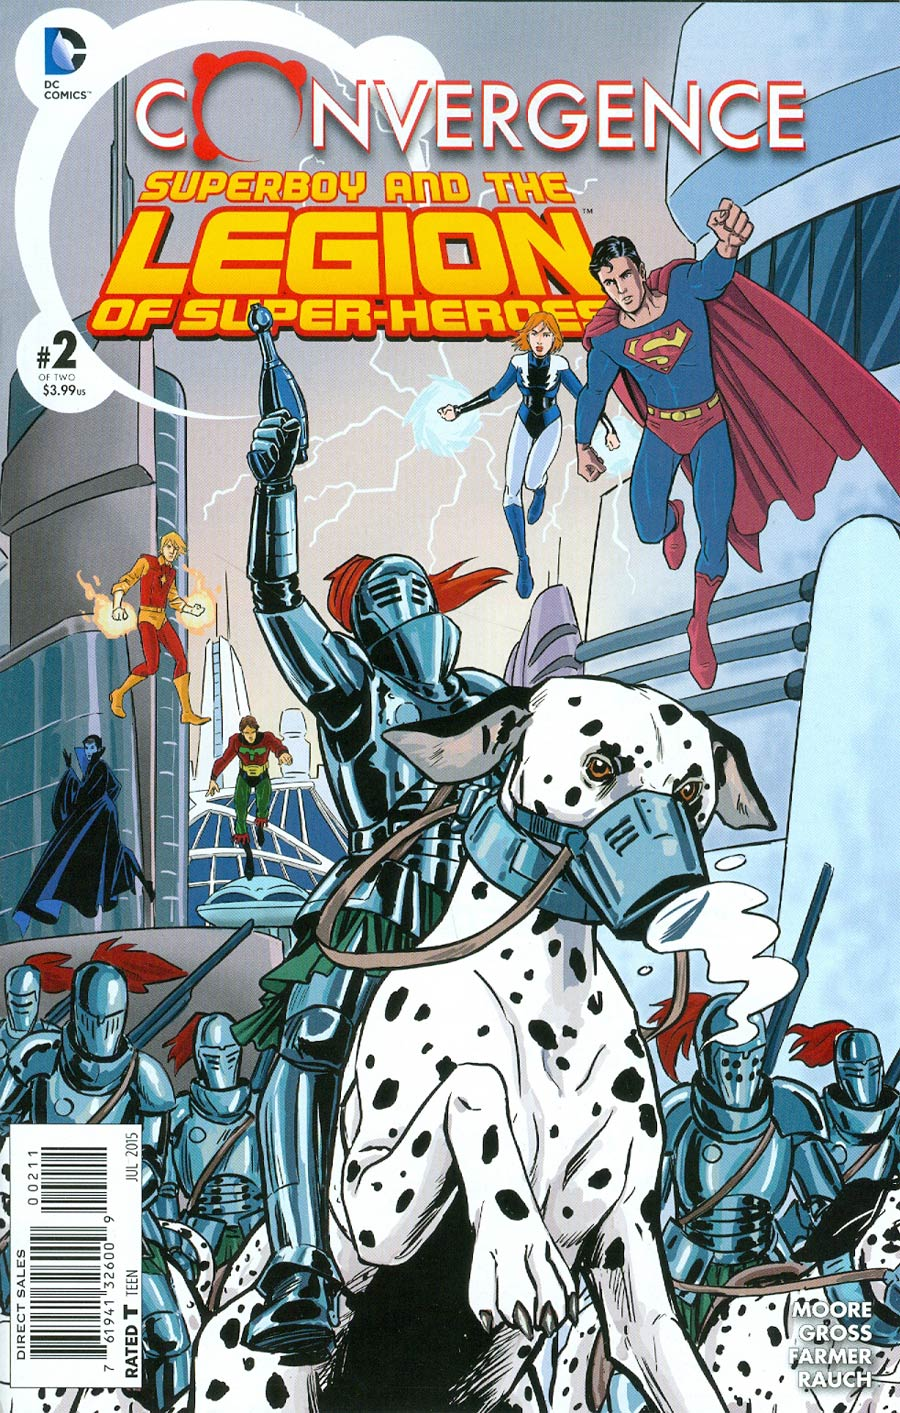 Convergence: Superboy and the Legion of Super-Heroes #2